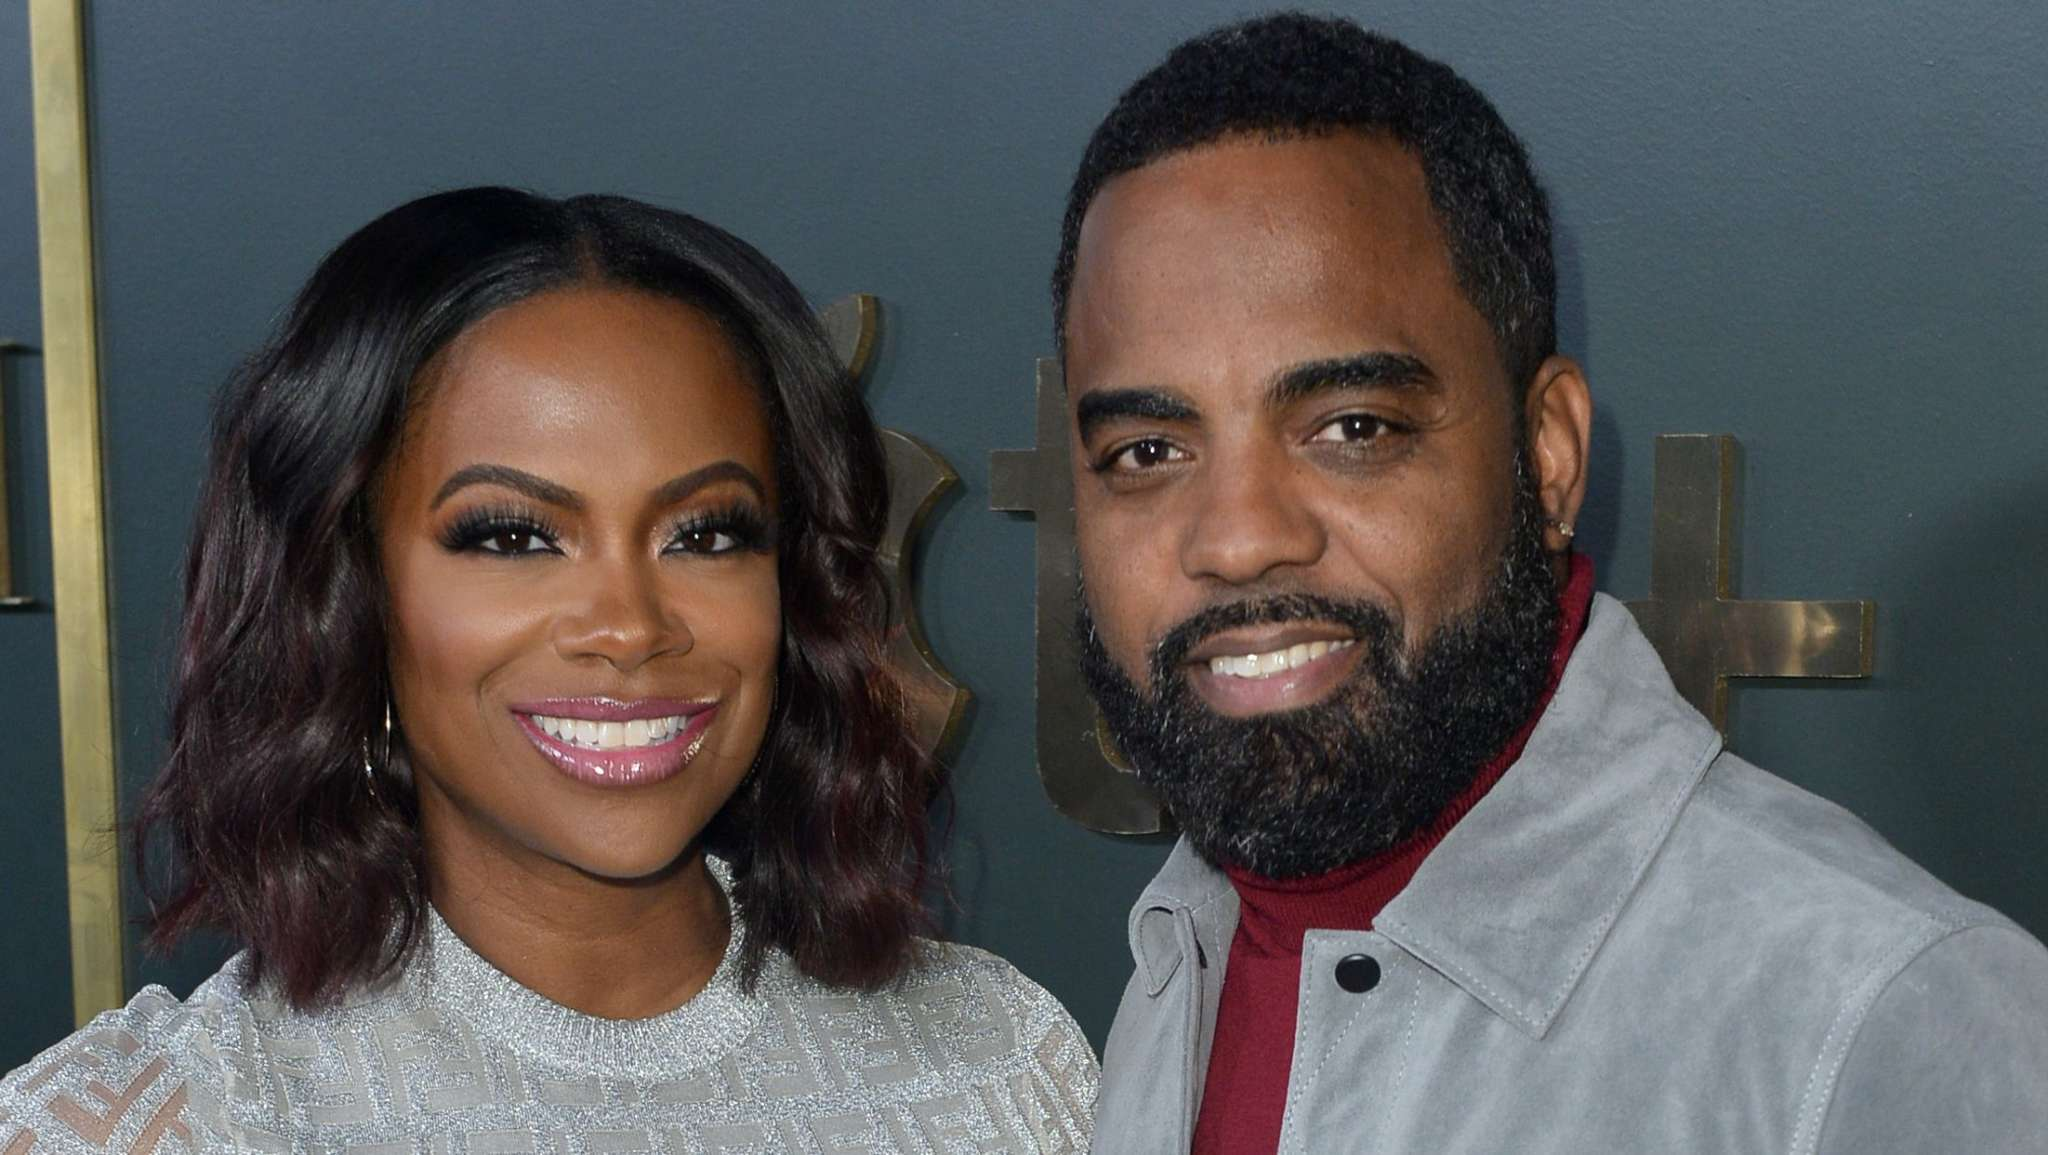 Kandi Burruss Shares A New Kandi & Todd Episode On Her YouTube Channel - Check It Out Here